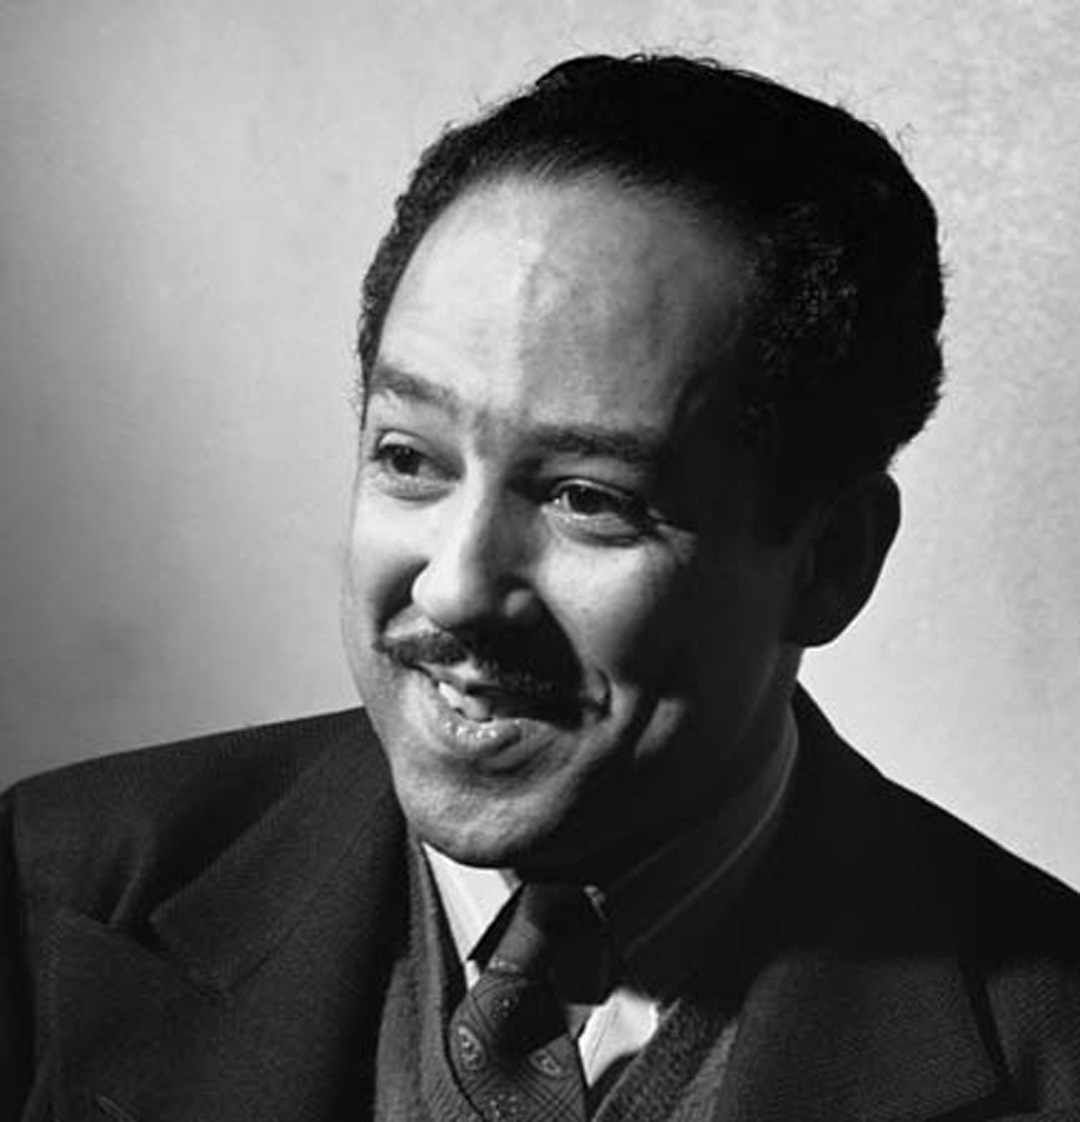 langston hughes The langston hughes page at american literature, featuring a biography and free library of the author's novels, stories, poems, letters, and texts.